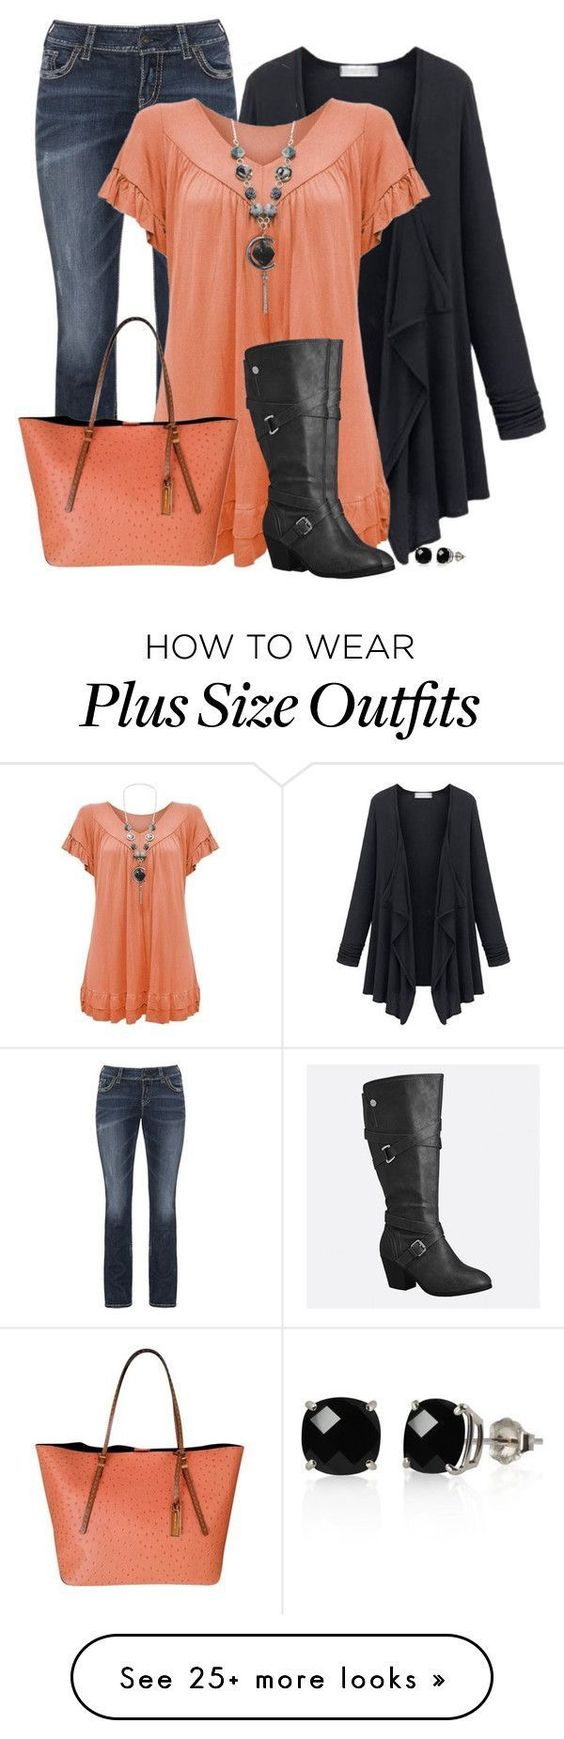 To Inspire Cool Outfits